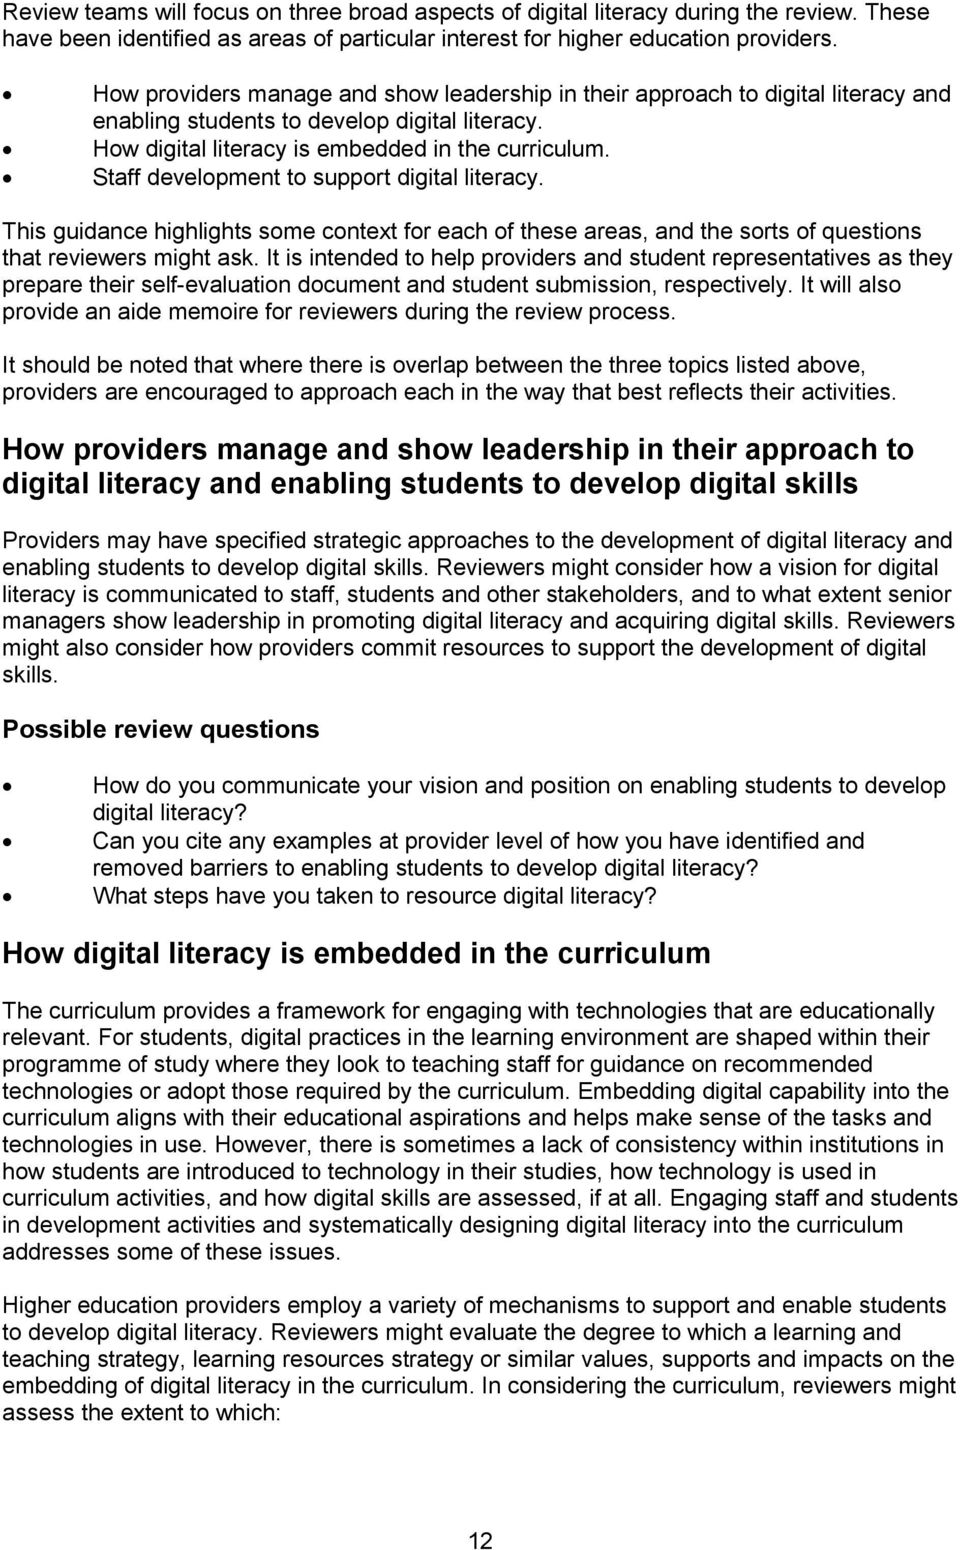 Staff development to support digital literacy. This guidance highlights some context for each of these areas, and the sorts of questions that reviewers might ask.